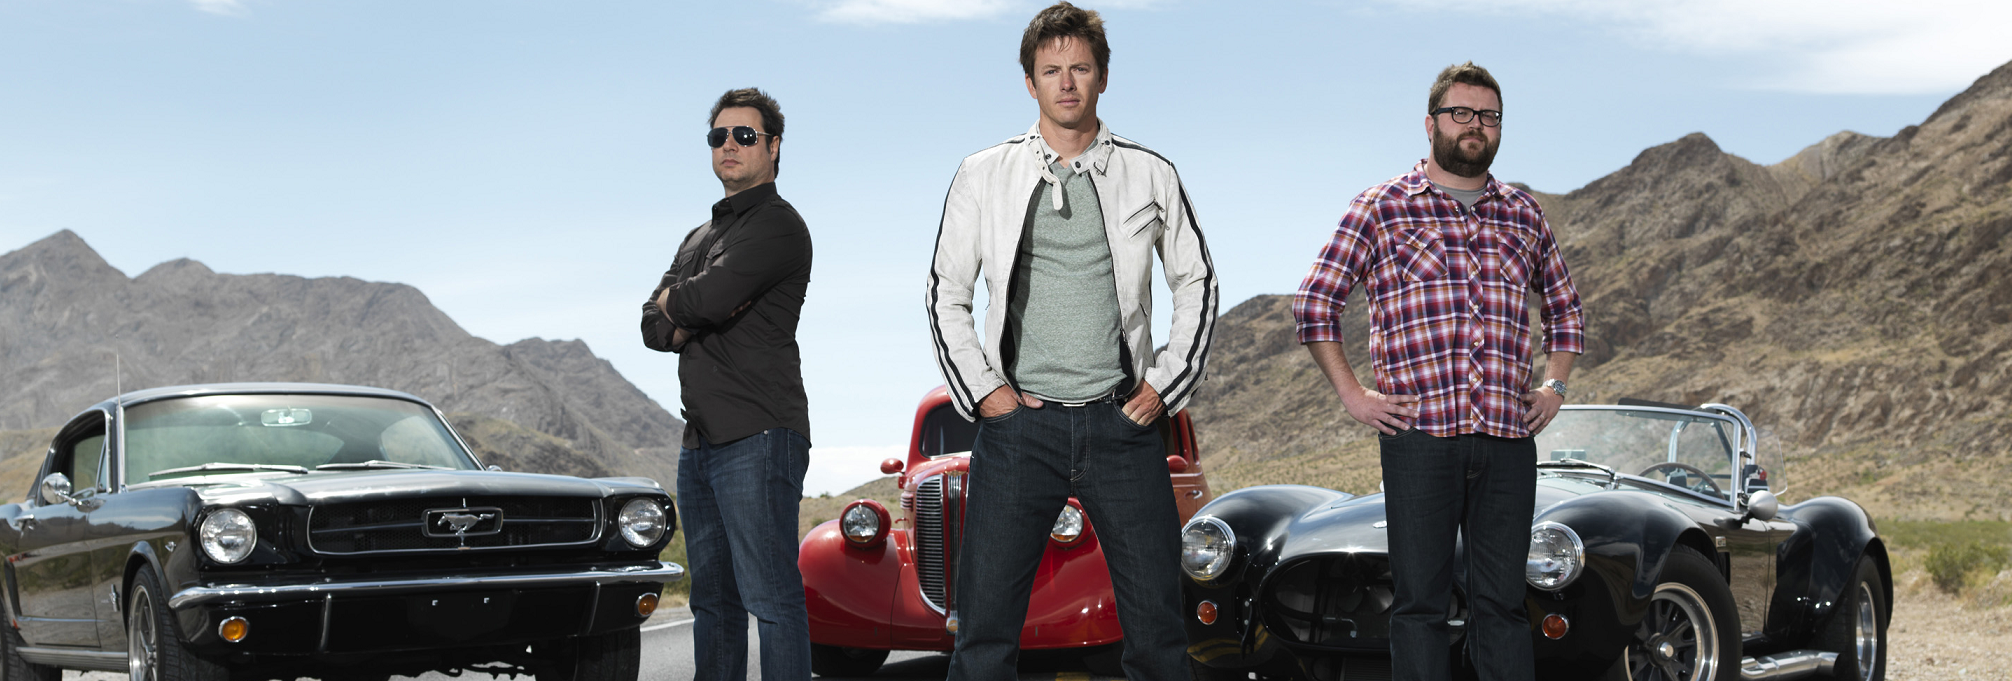 "The BBC has announced that the hit TV show Top Gear USA has completed its contractual run on the History channel, and has ""begun exploring new opportunities for the series in the US."" This is very good news for the millions of Top Gear fans who are currently holding their breath as negotiations with other networks begin to take place."